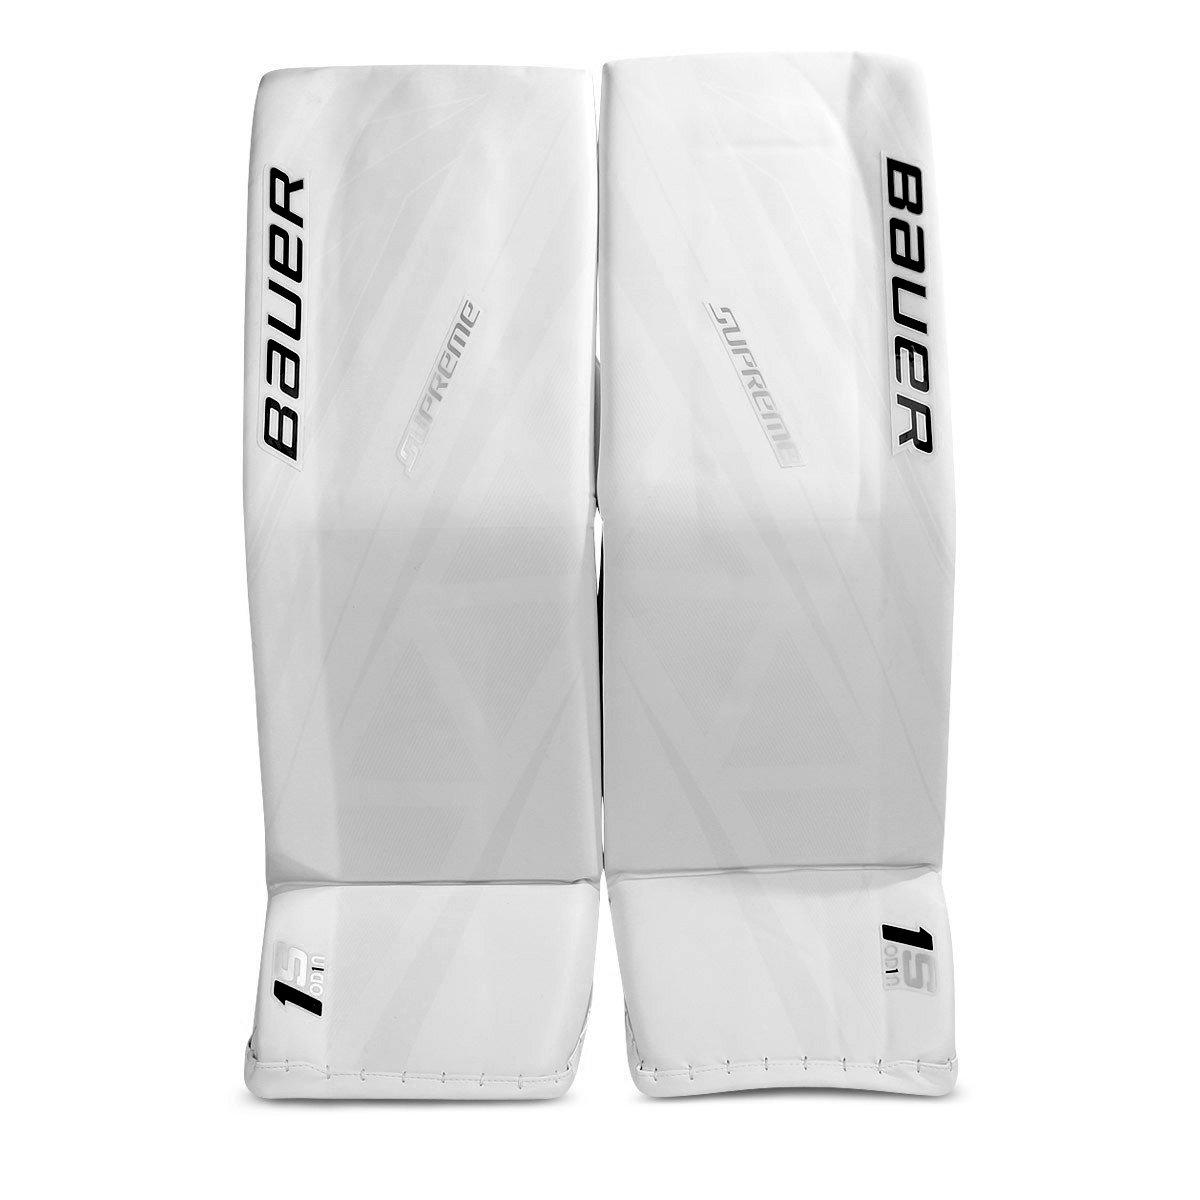 Supreme 1S OD1N Goal Pad Senior S16,,Medium